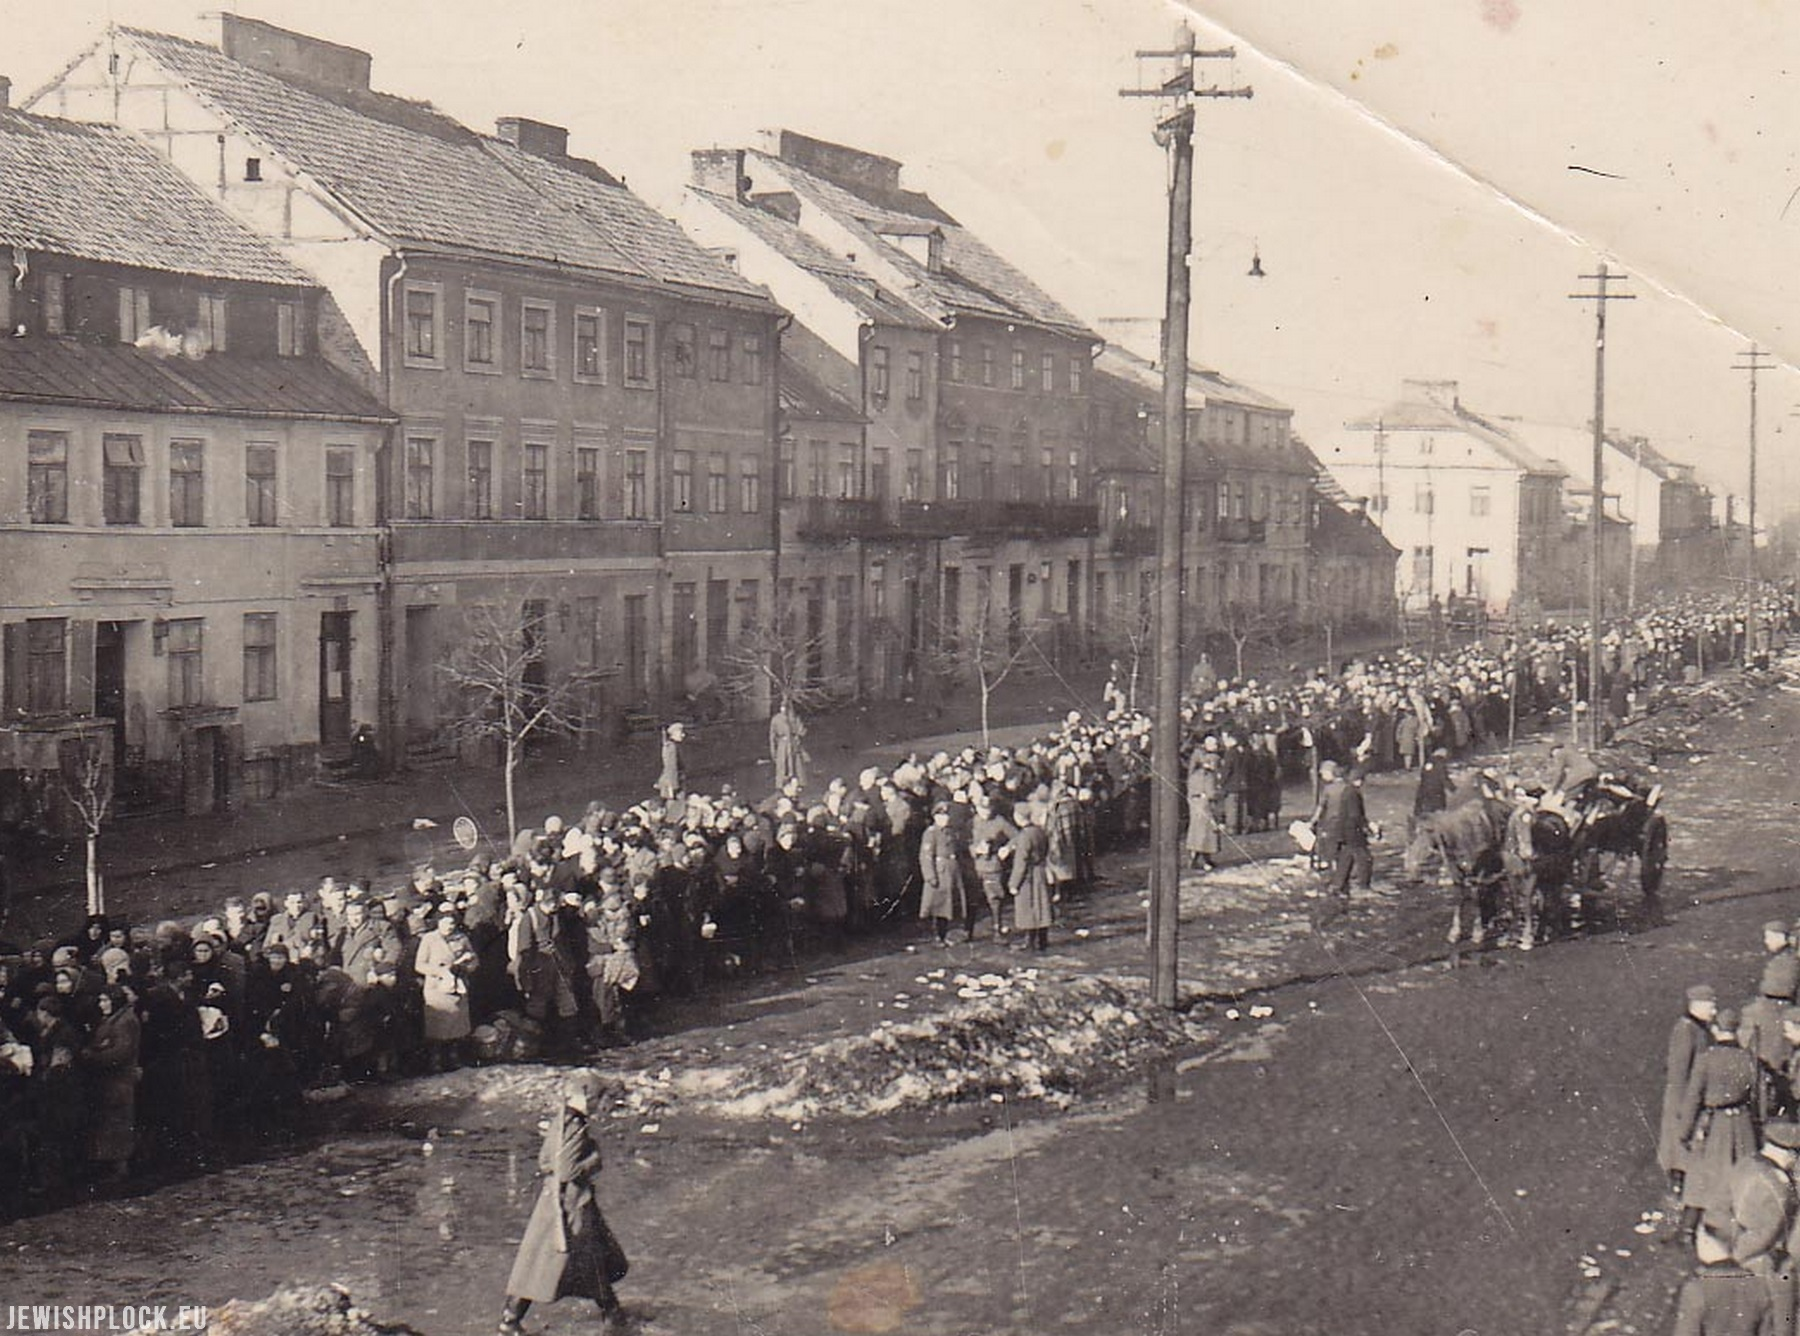 The 79th anniversary of the liquidation of the ghetto in Płock